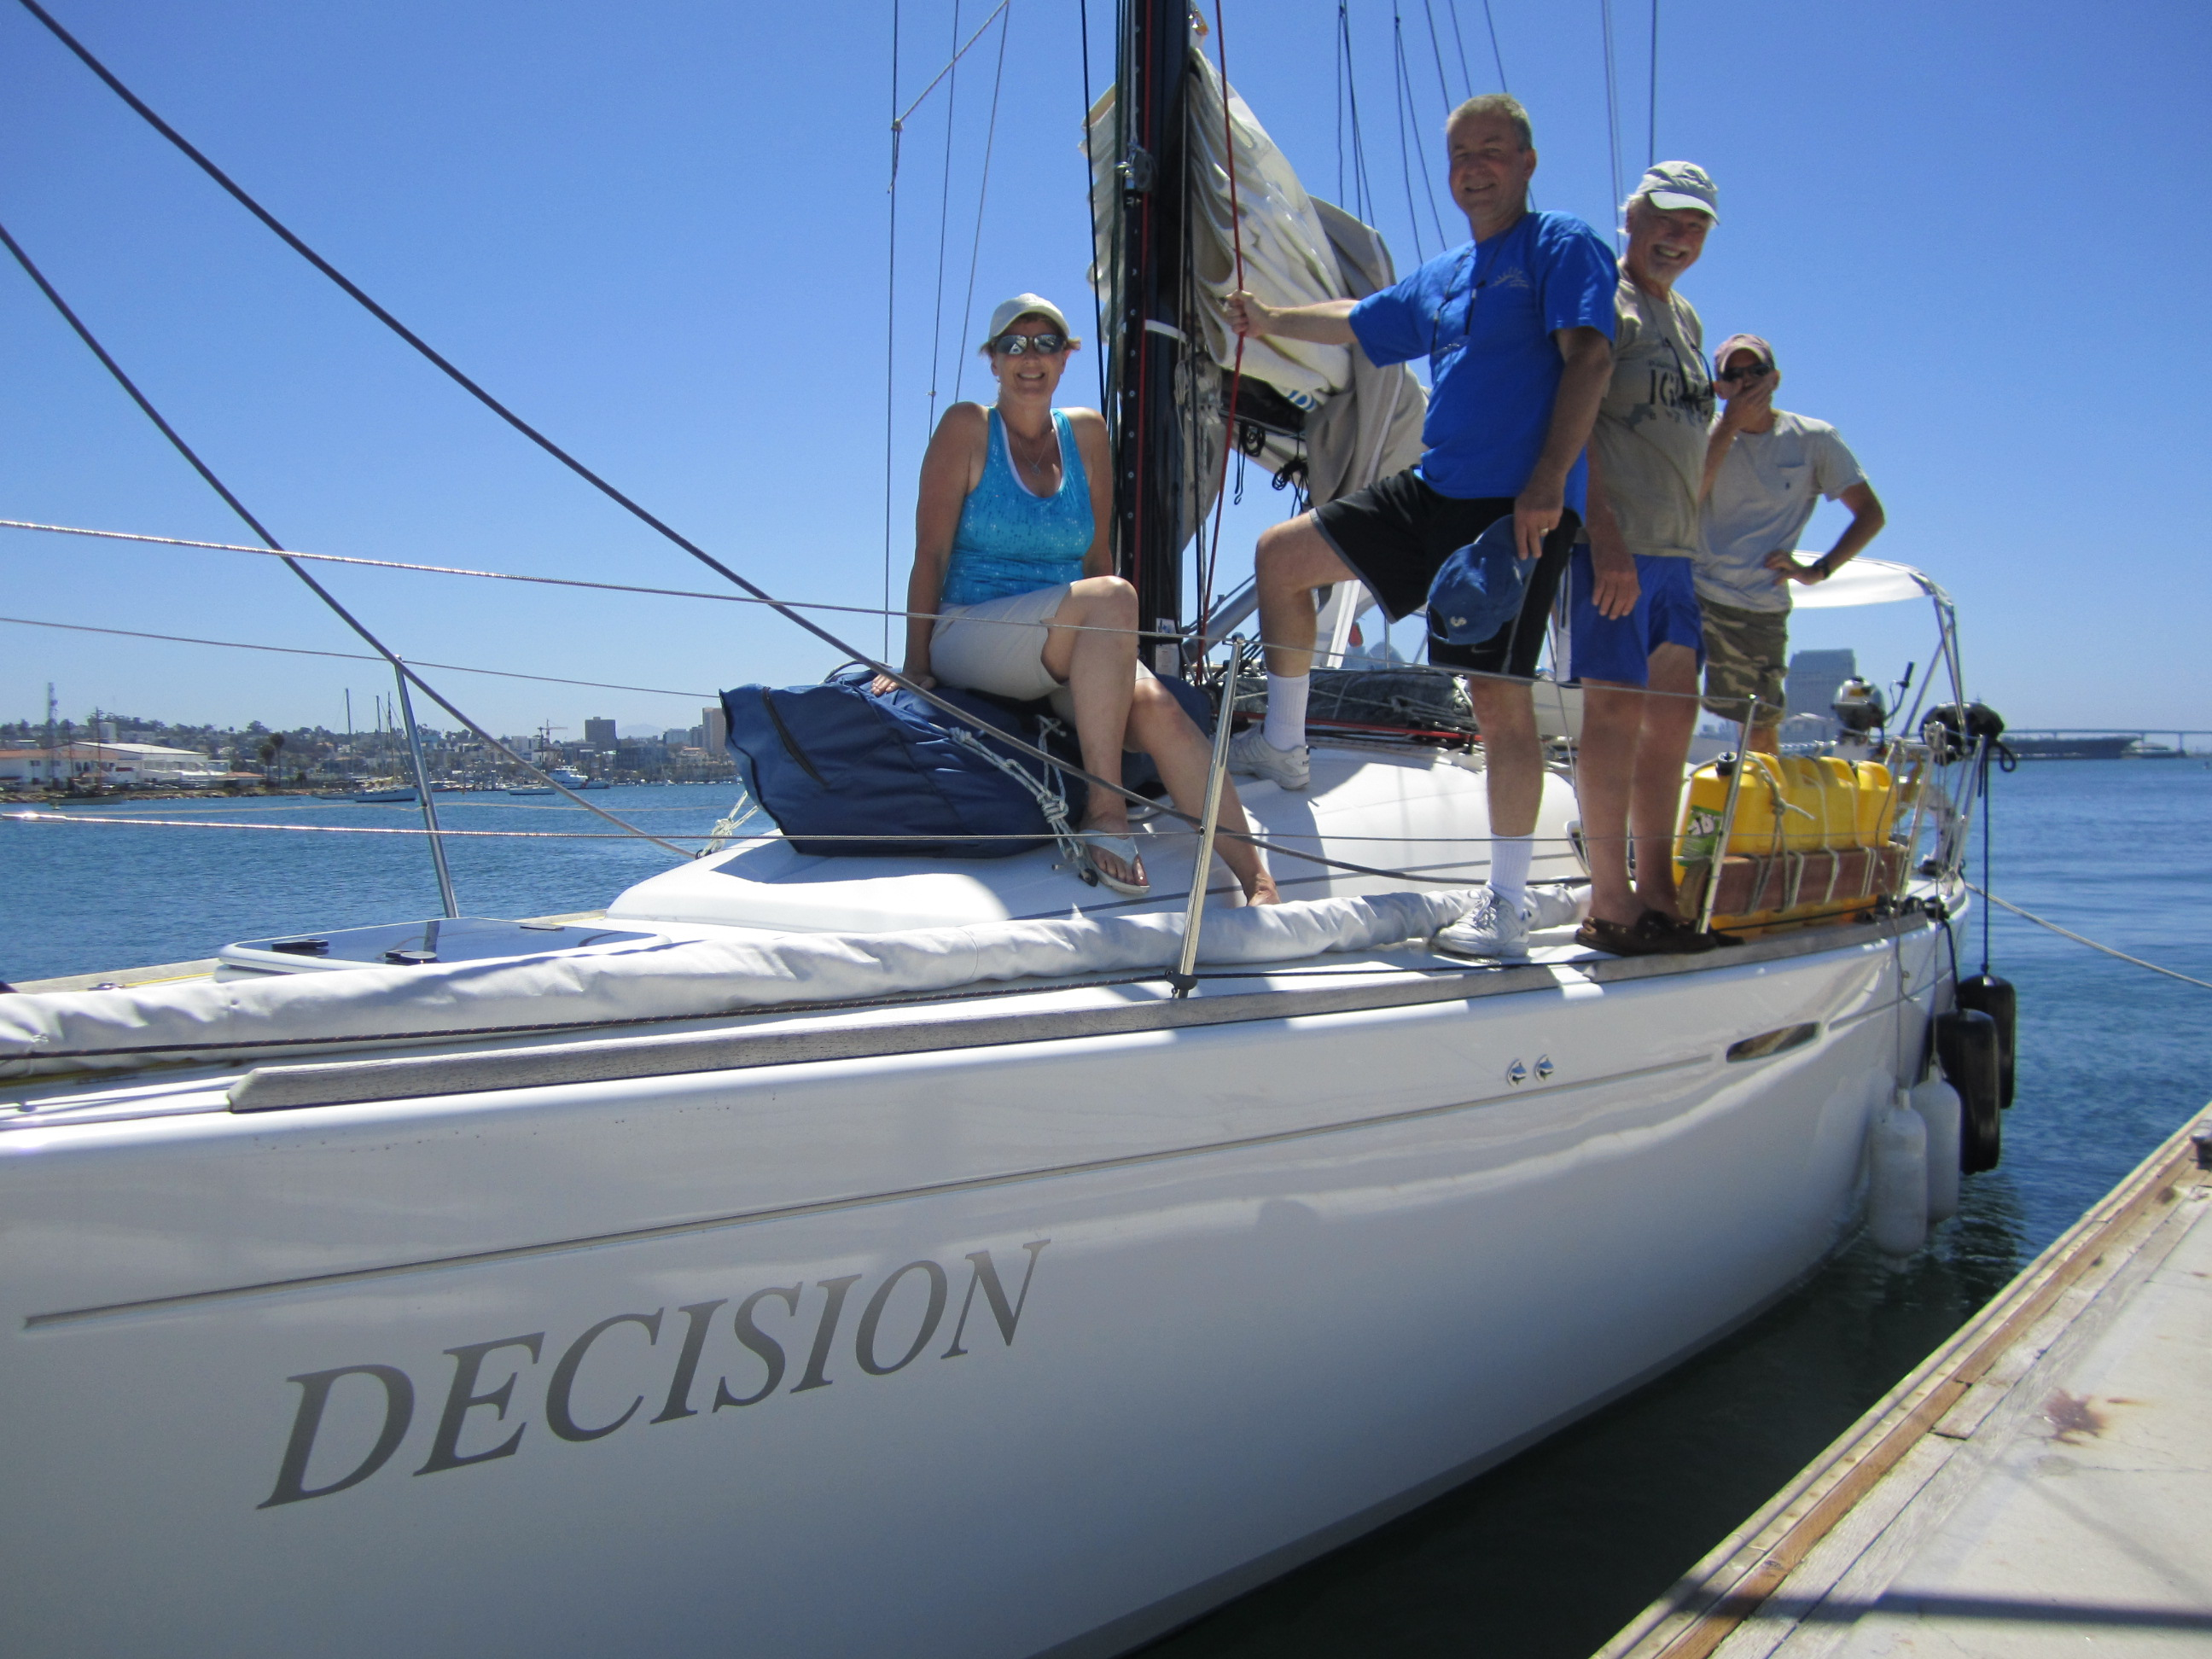 Sailing Decision as a group